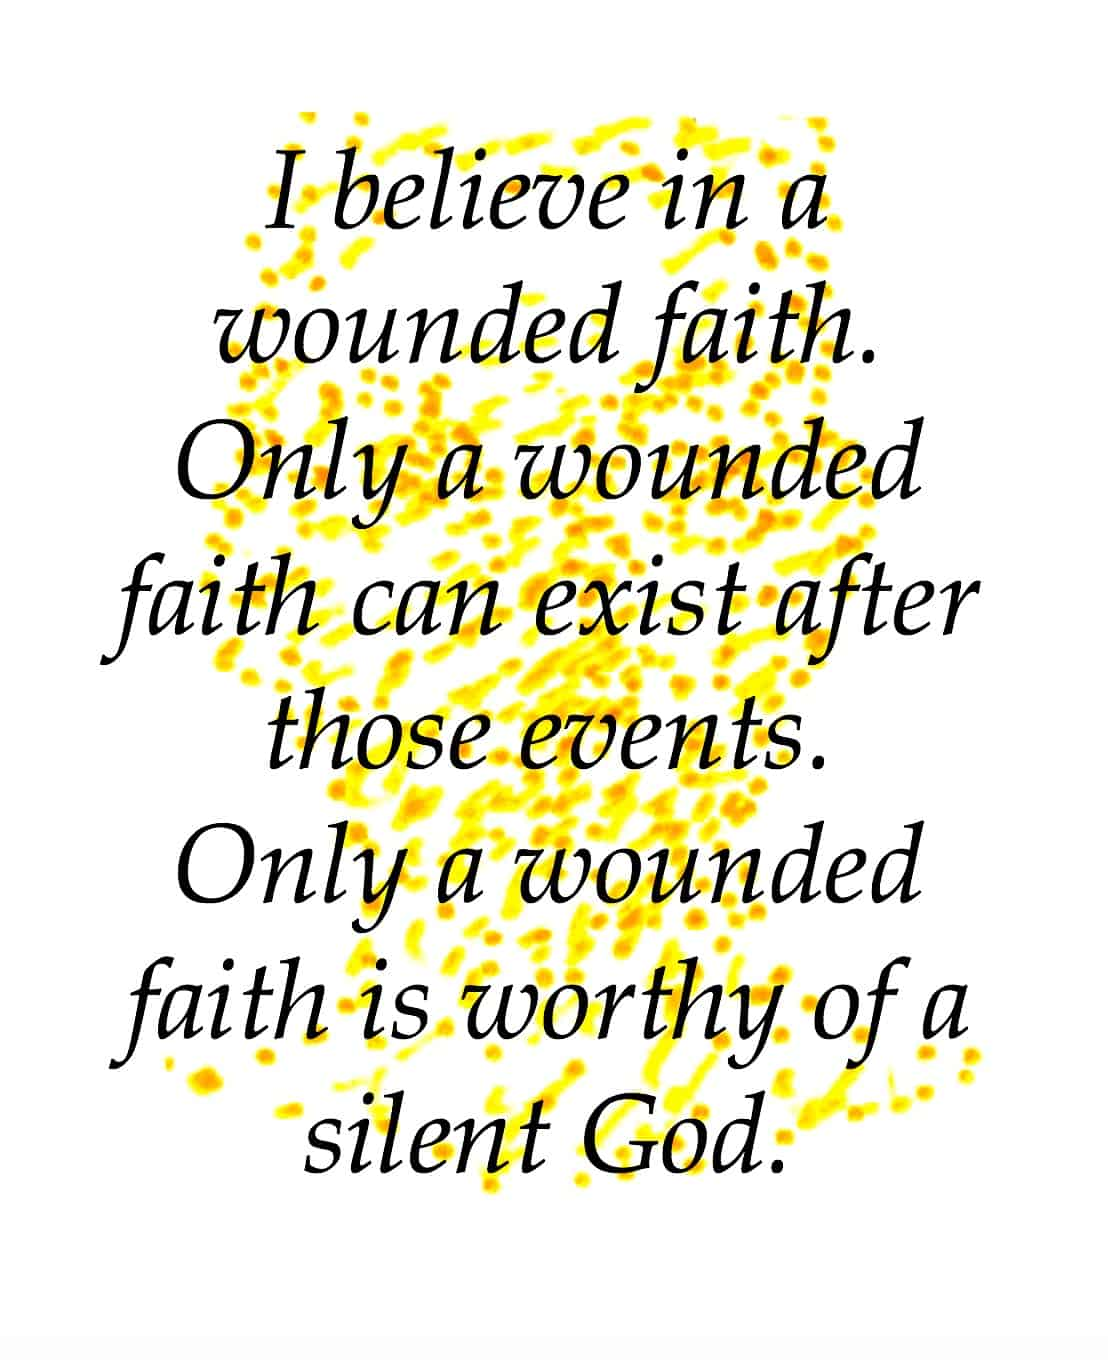 wounded faith